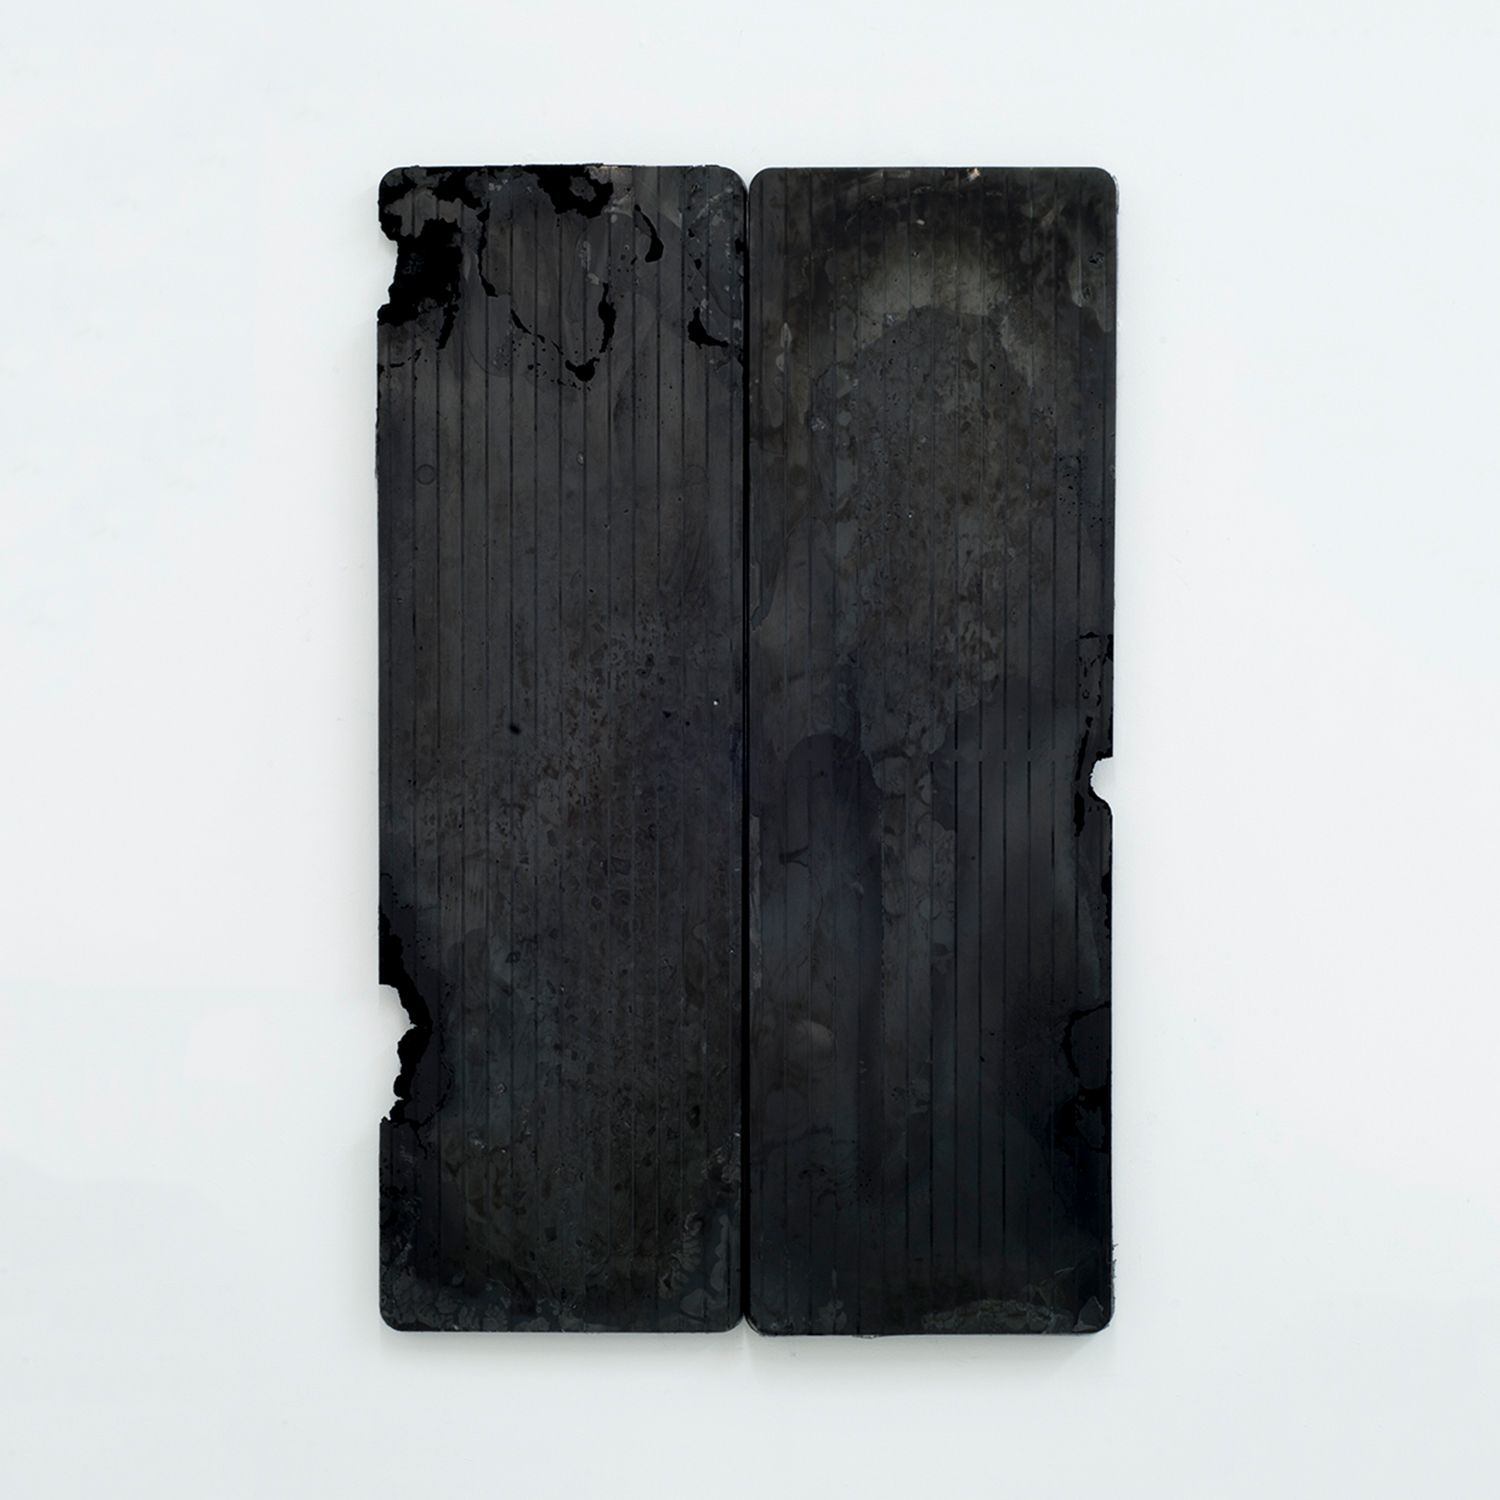 Carbon Form (diptych)